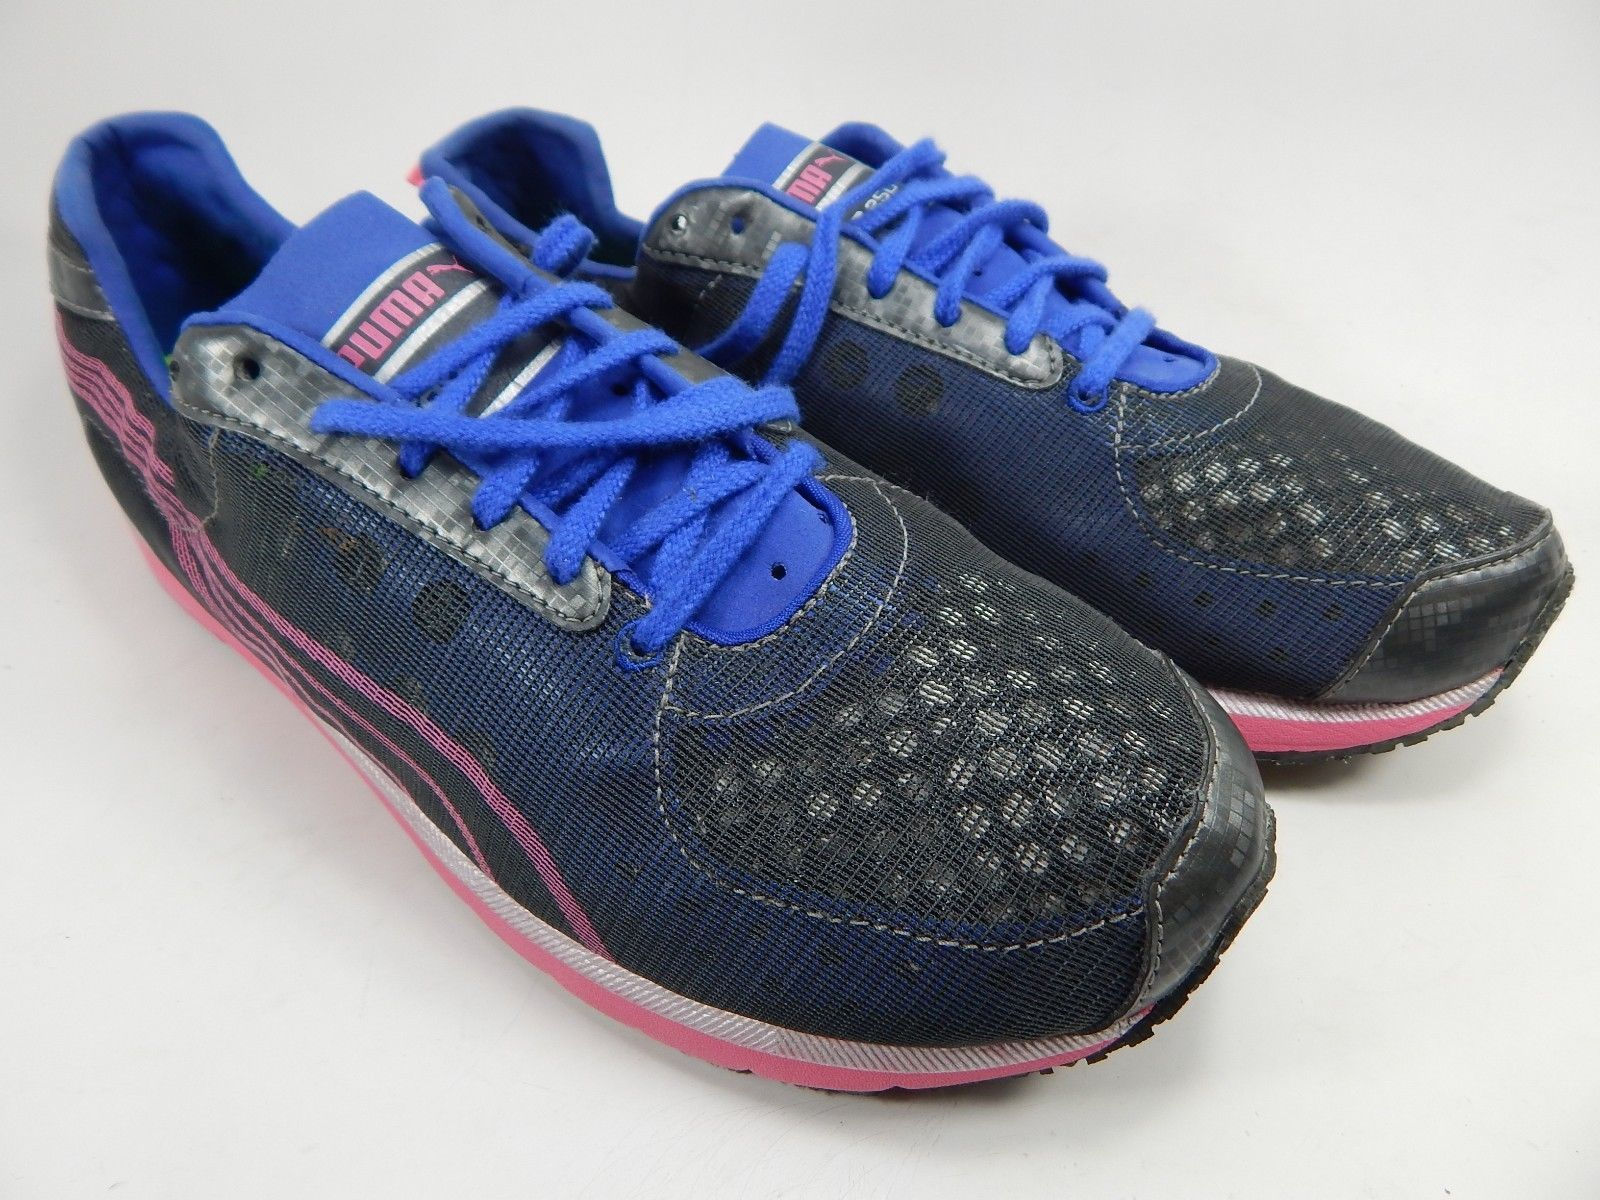 Puma Faas 250 Women s Running Shoes Size US and 50 similar items. 57 f01a1c7f9